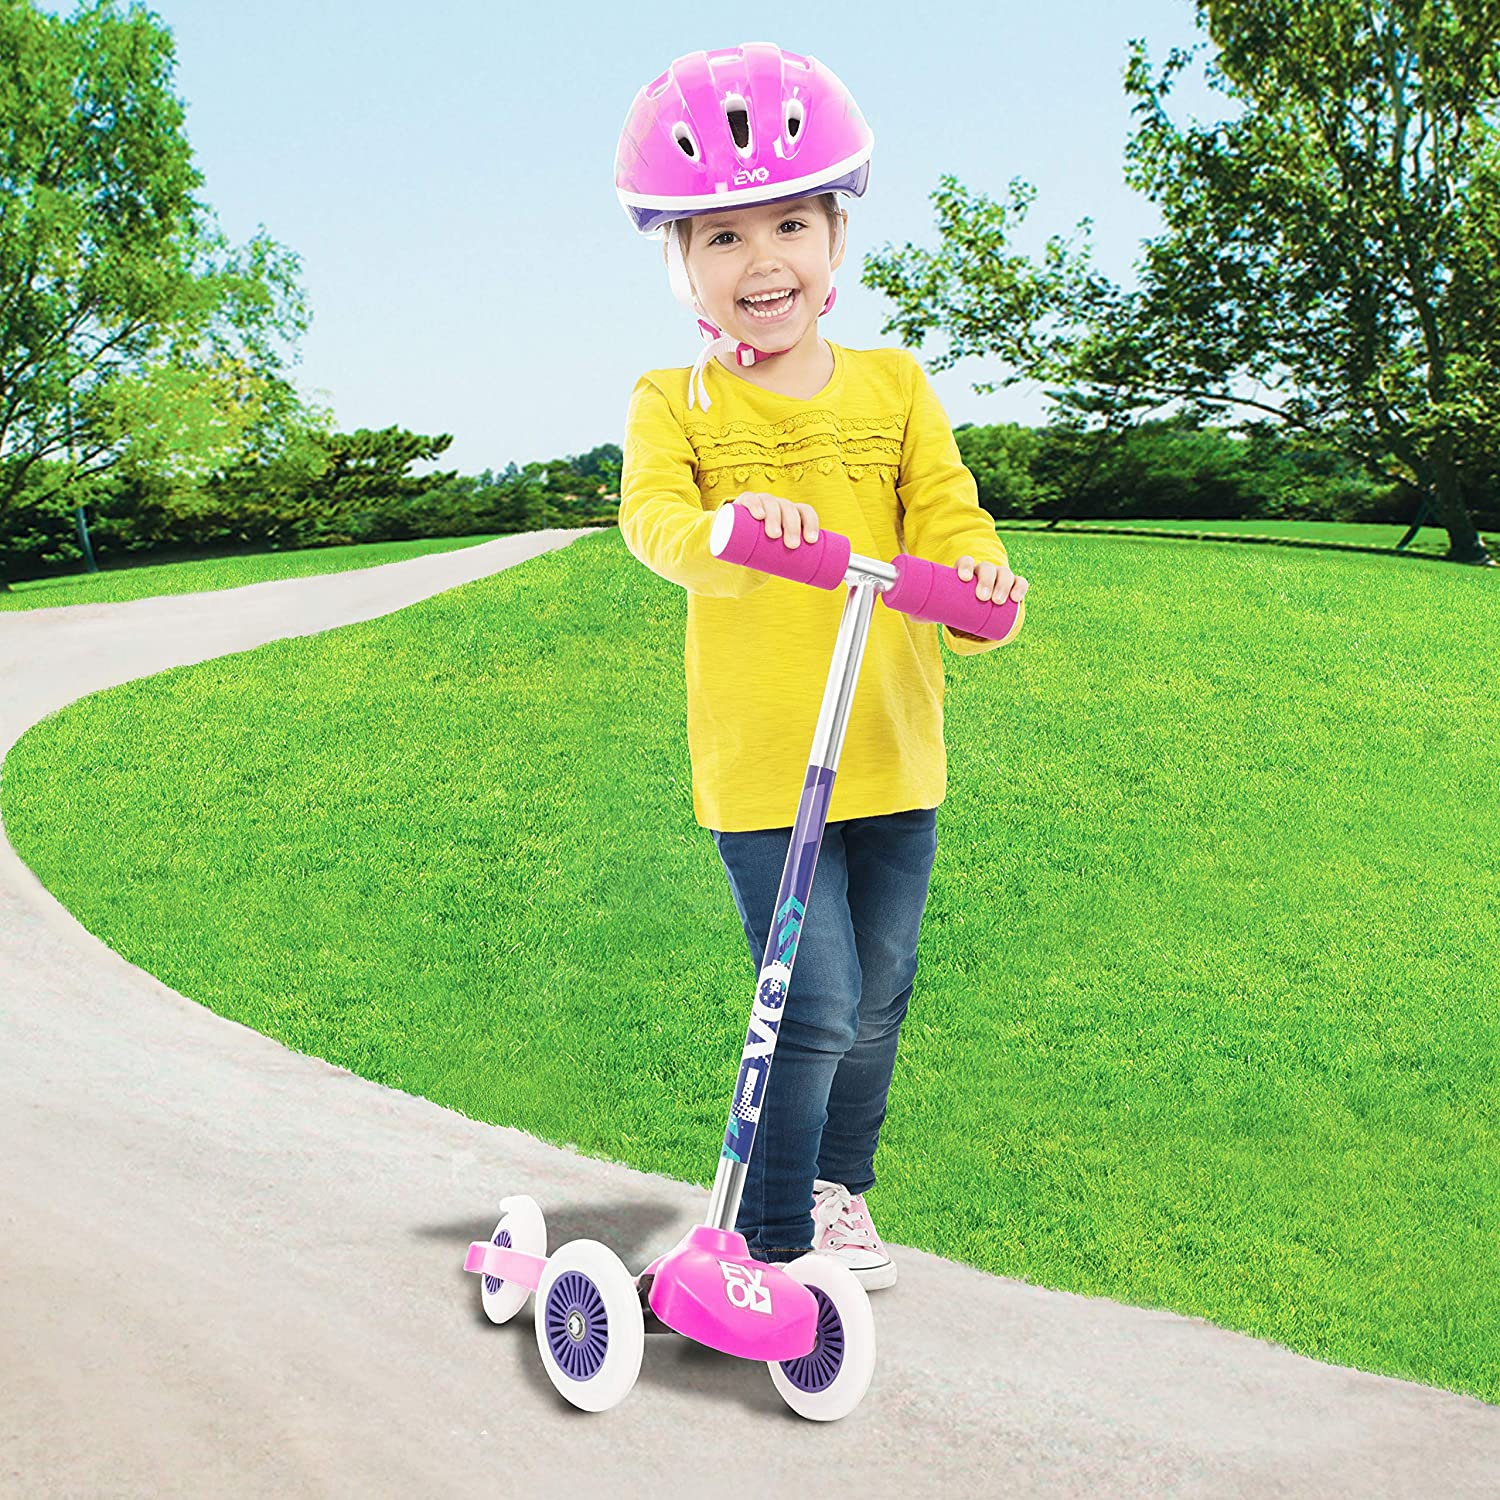 Kids 3-Wheel Scooter For Boys /& Girls EVO Pink Move /& Groove Scooter